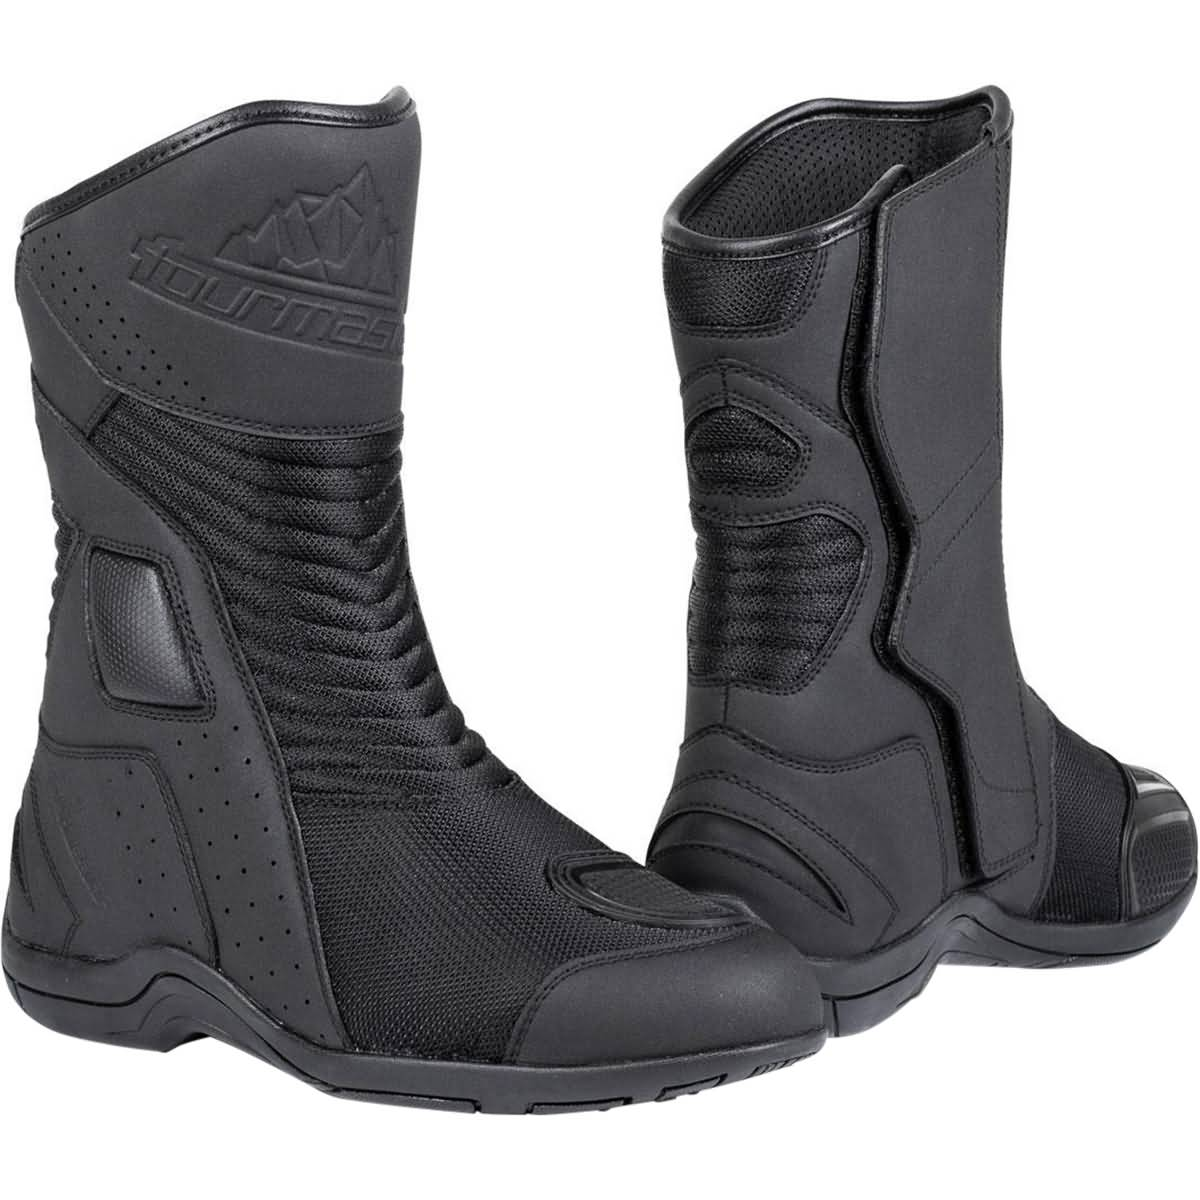 Tour Master Solution Air V2 Men's Street Boots-8605